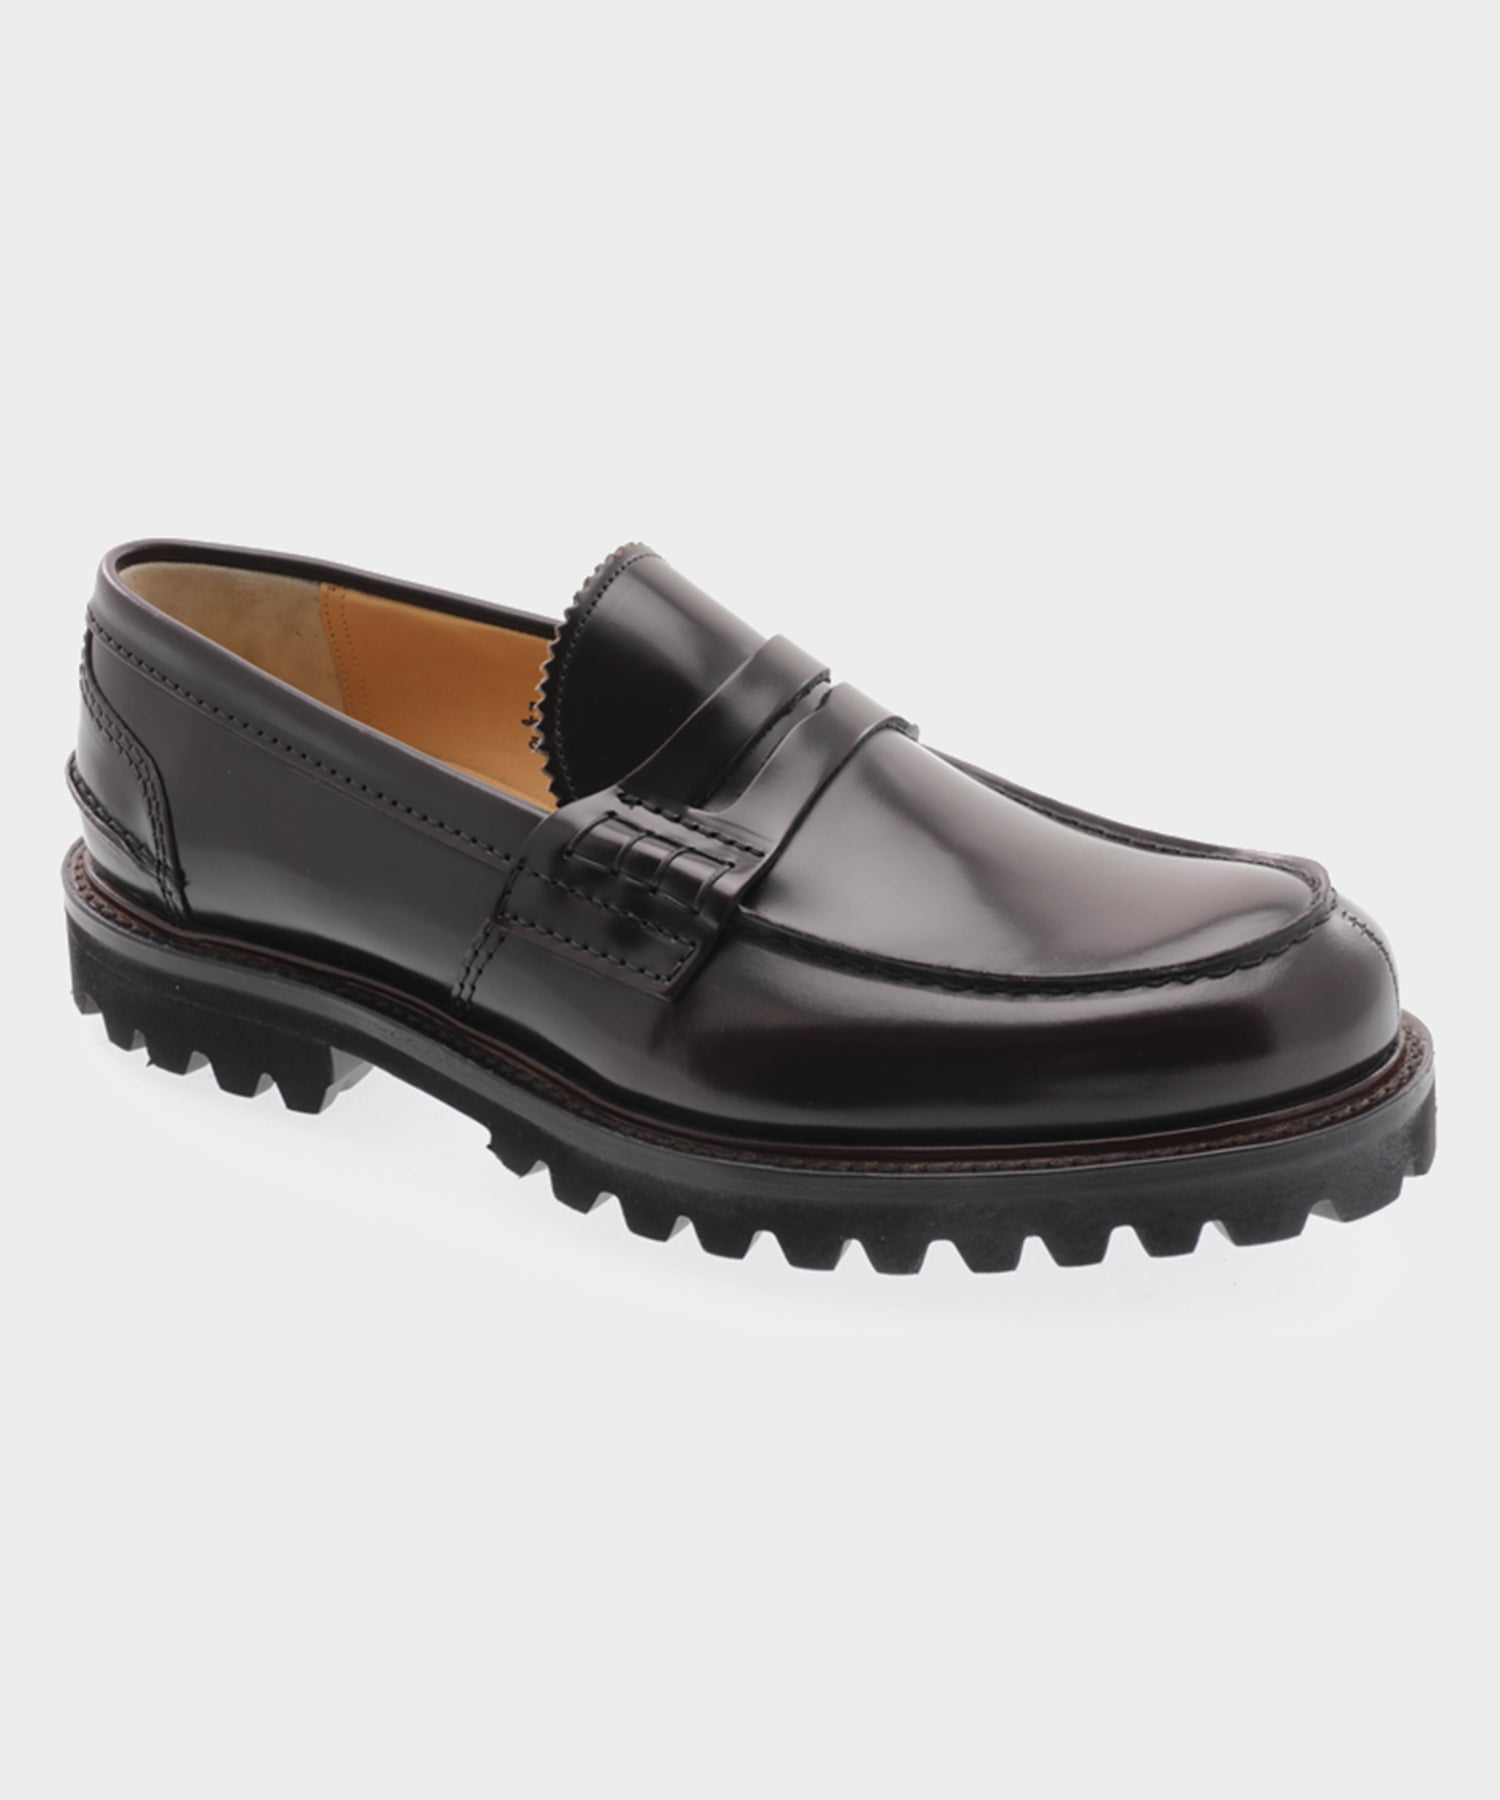 Church's Pembrey 5 Loafer in Light Ebony